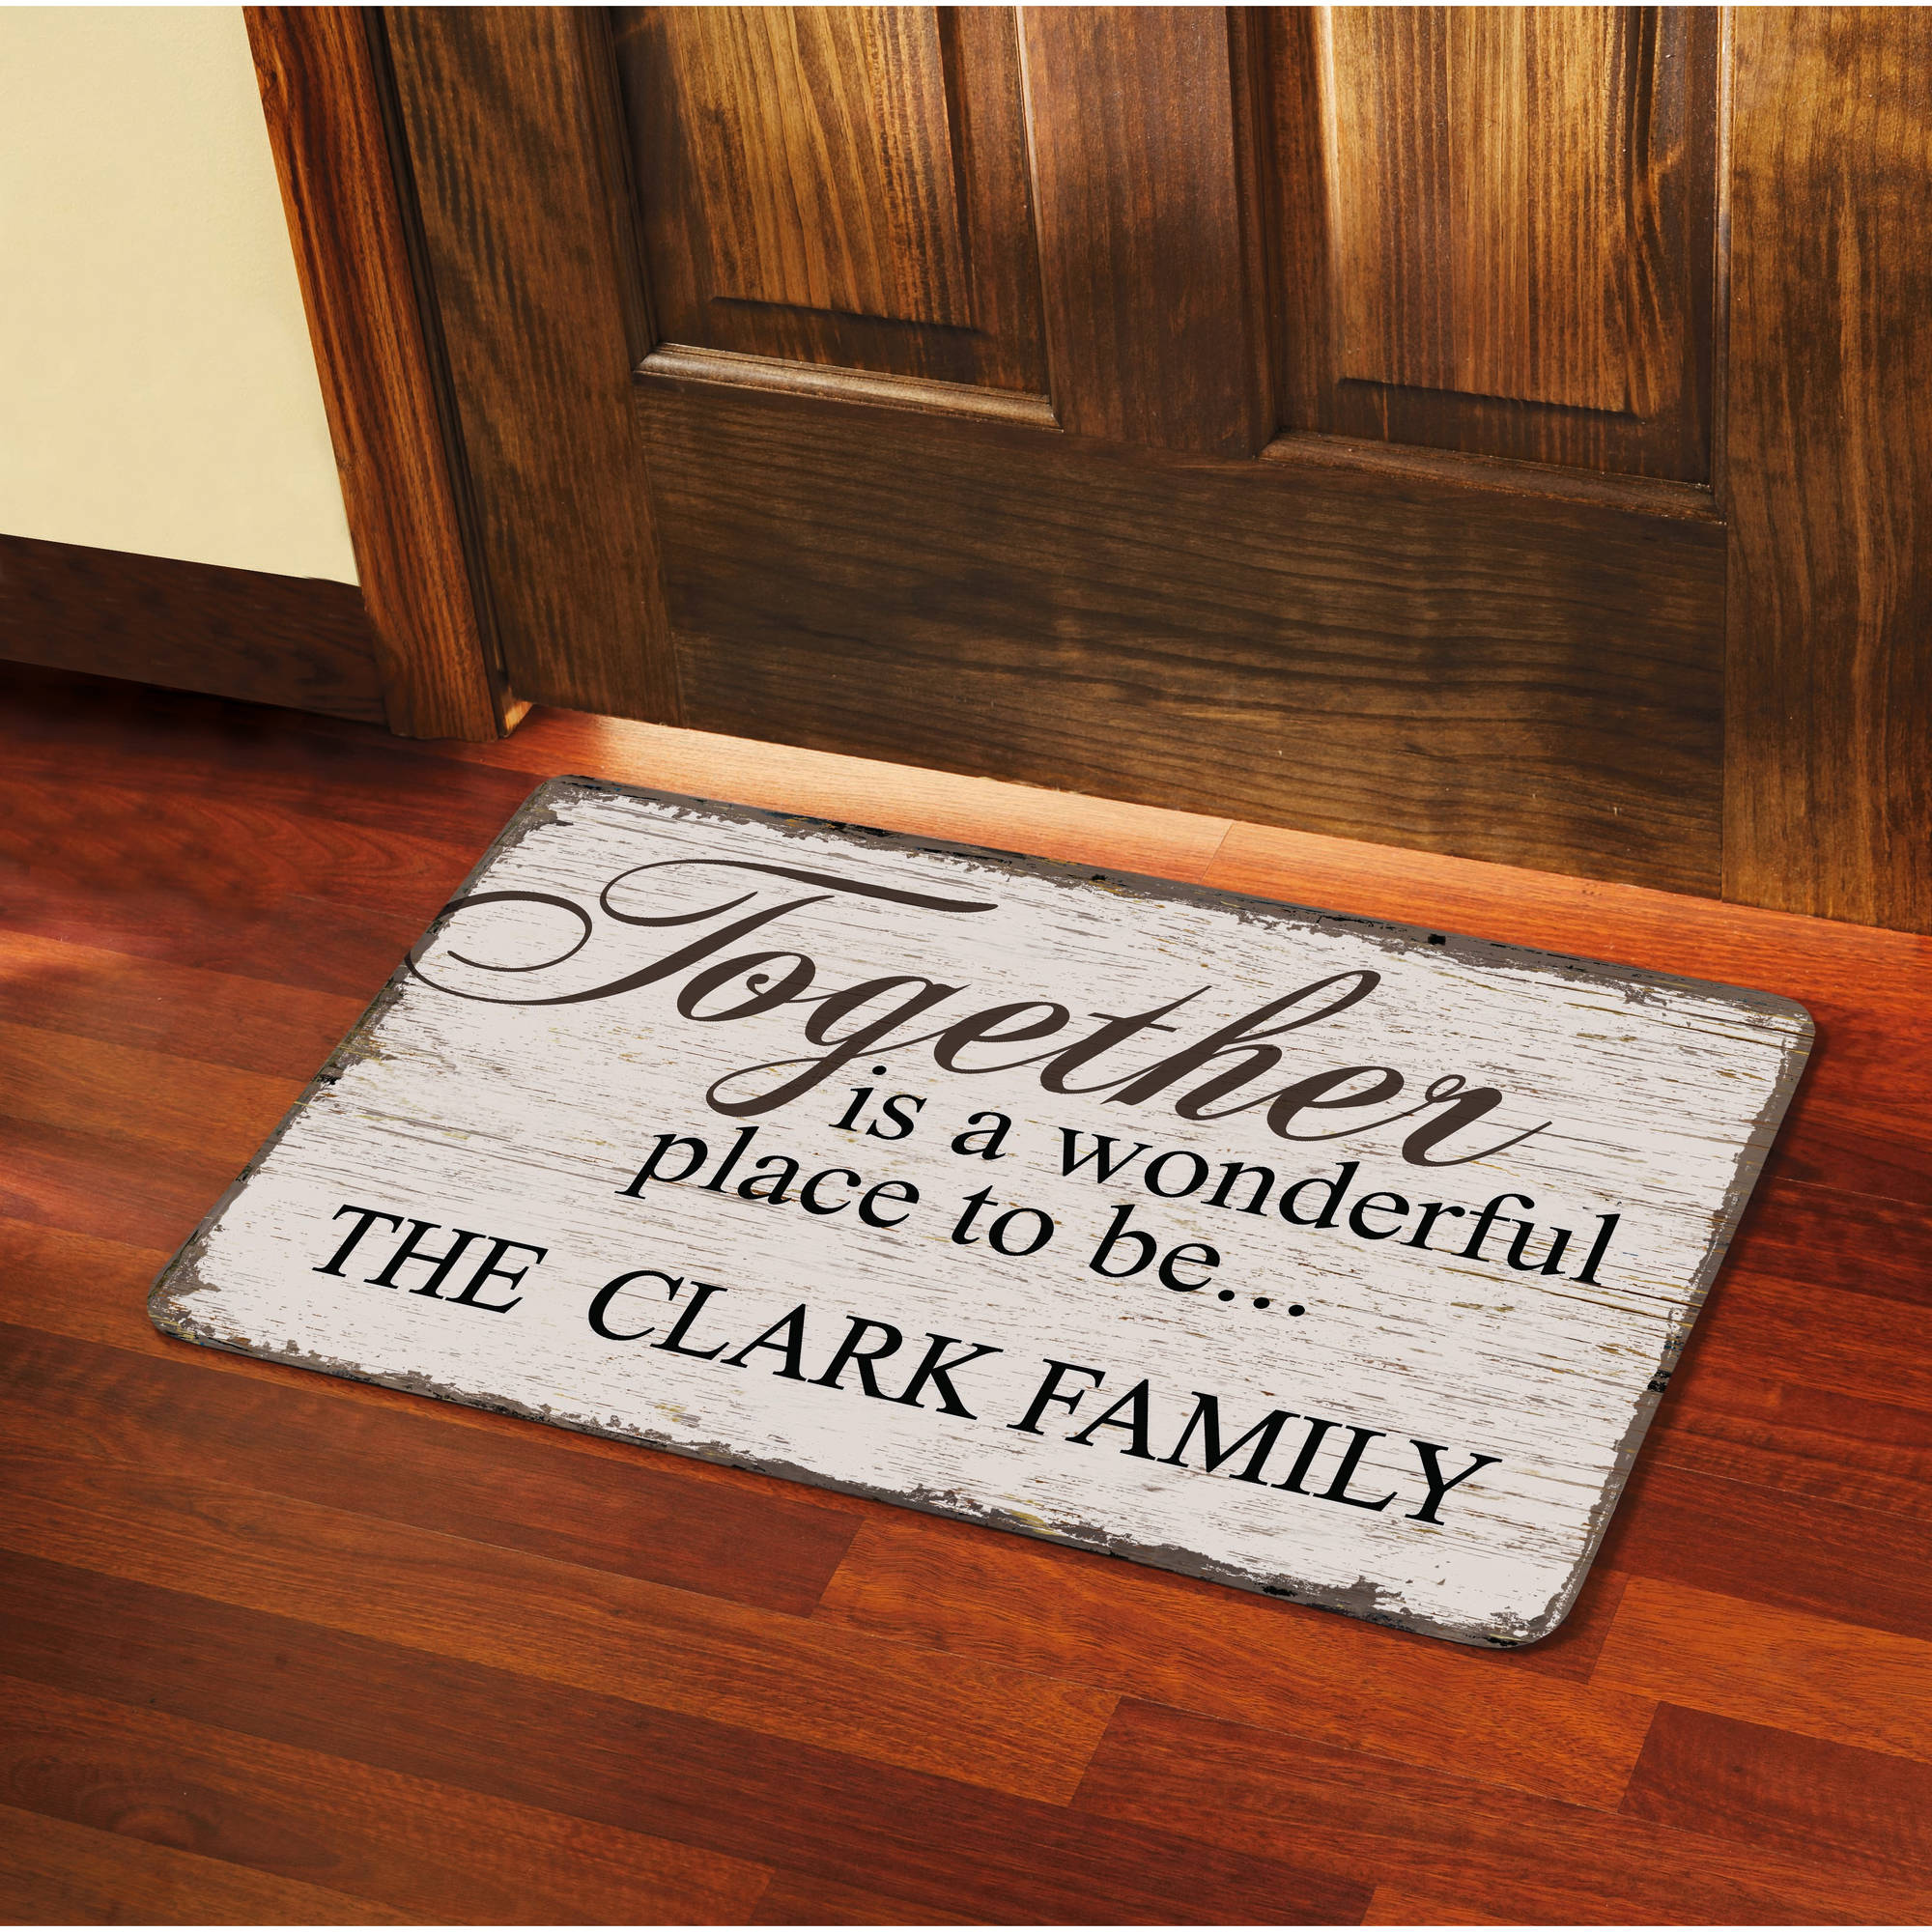 Personalized together is a wonderful place to be doormat 17 x 27 walmart com